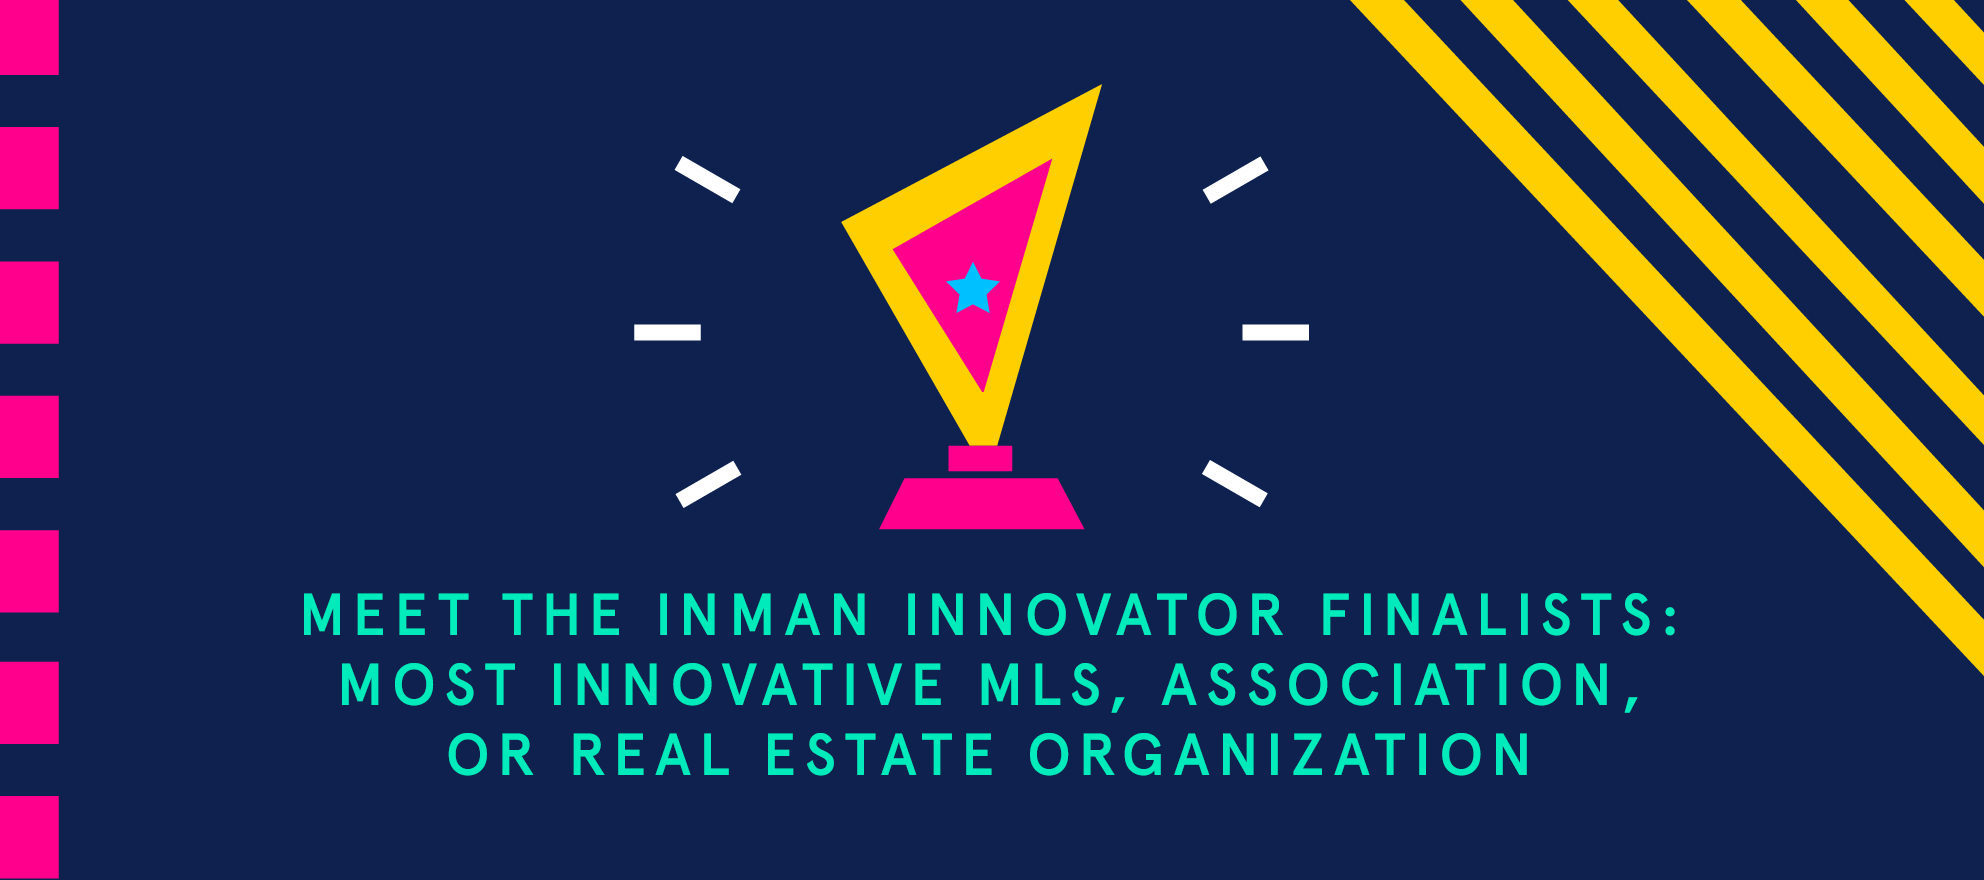 Inman Innovator Finalists, Most Innovative MLS, Association